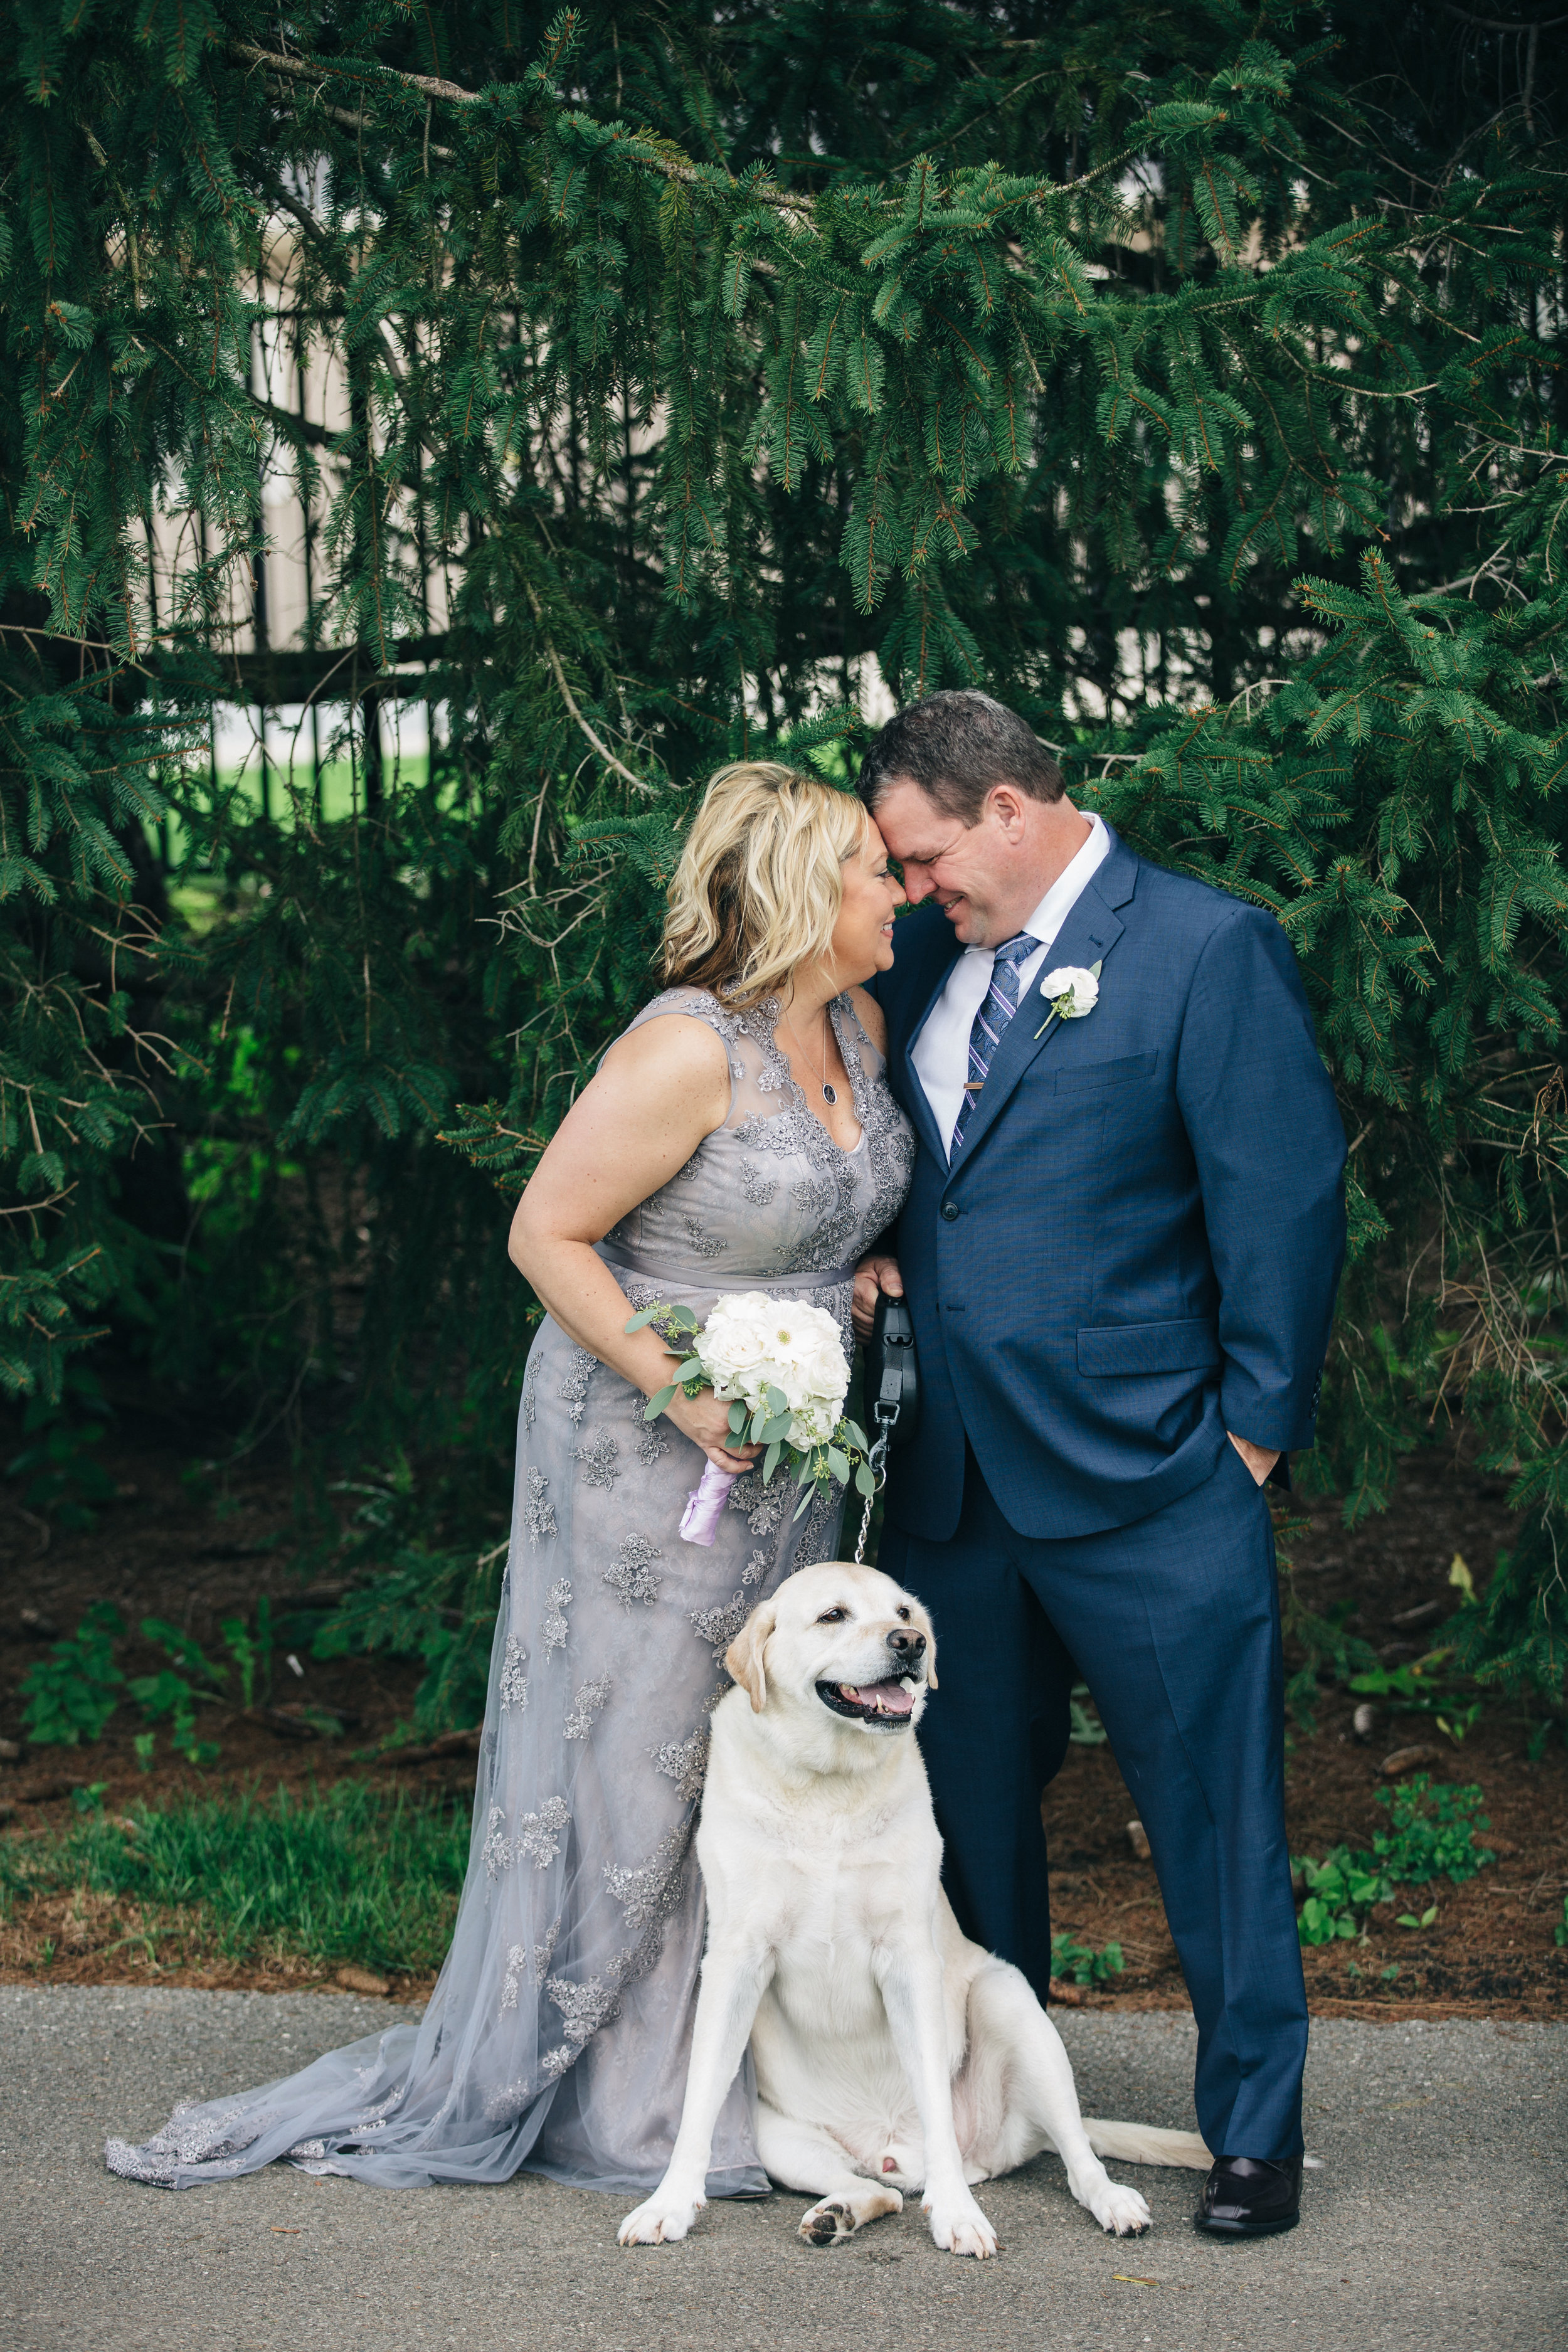 Bride and groom portraits with dog.